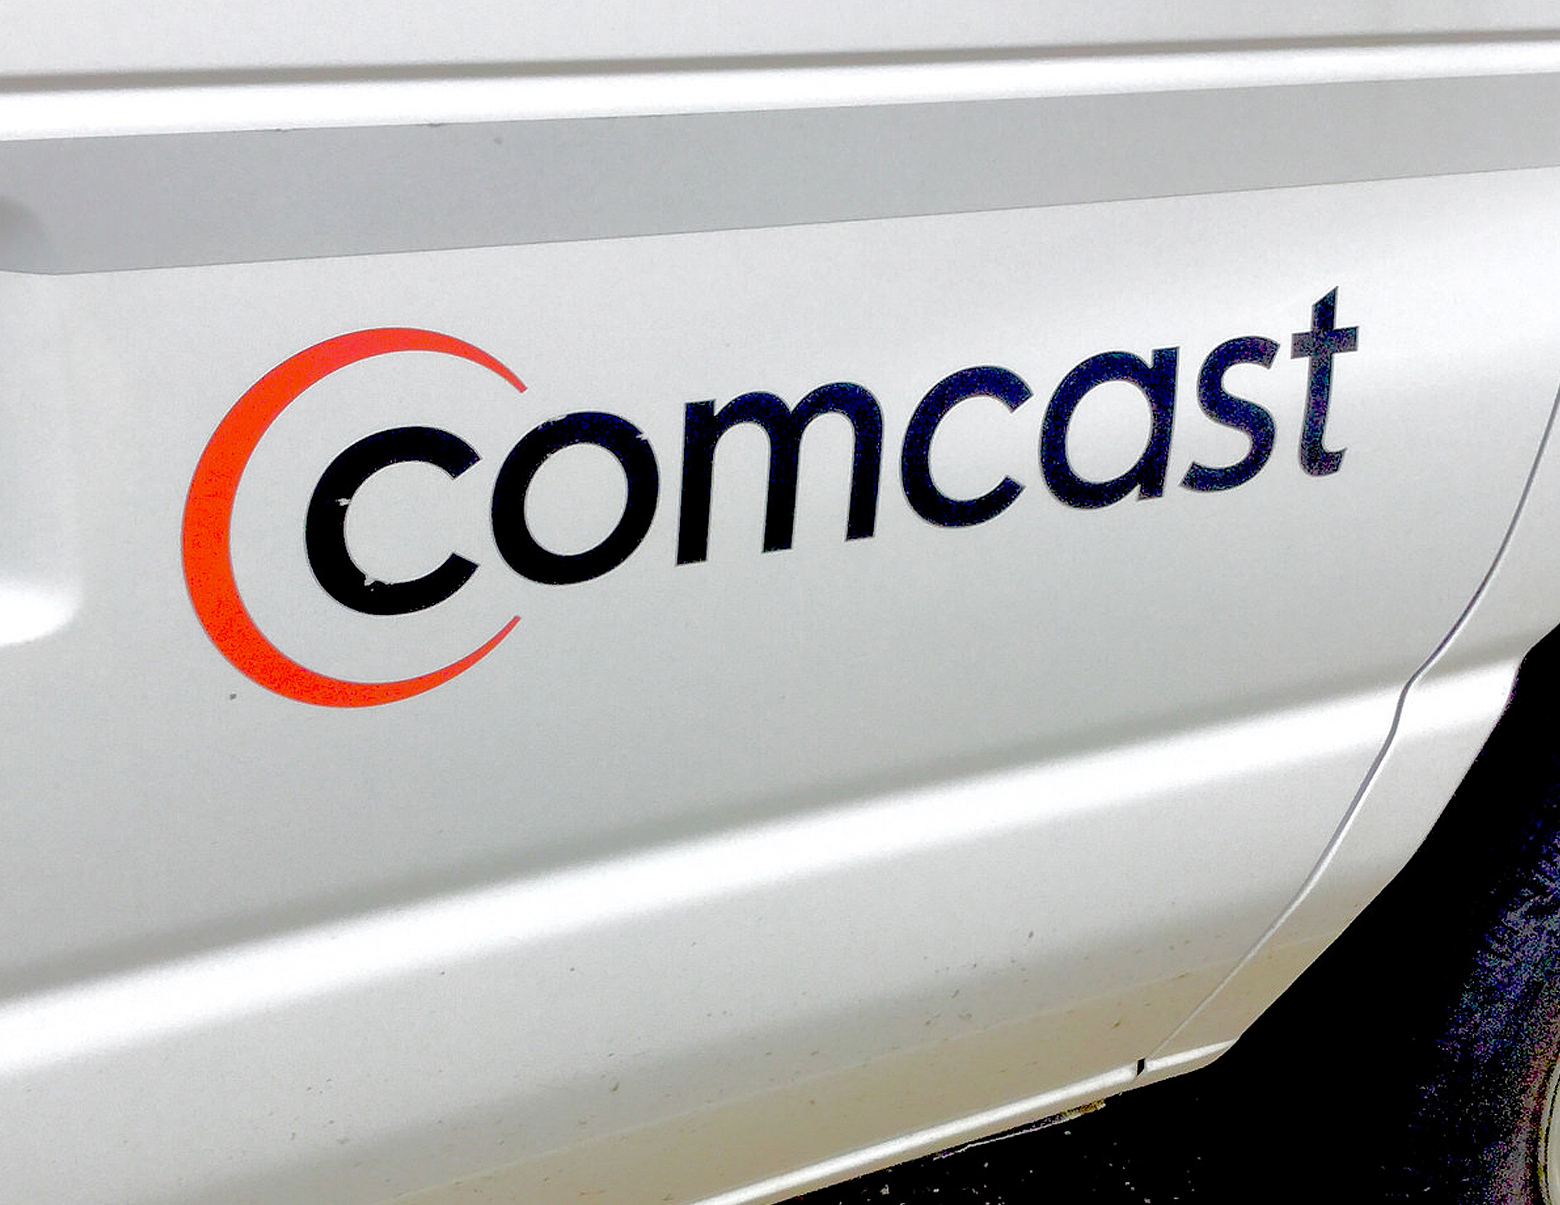 Comcast wireless plan